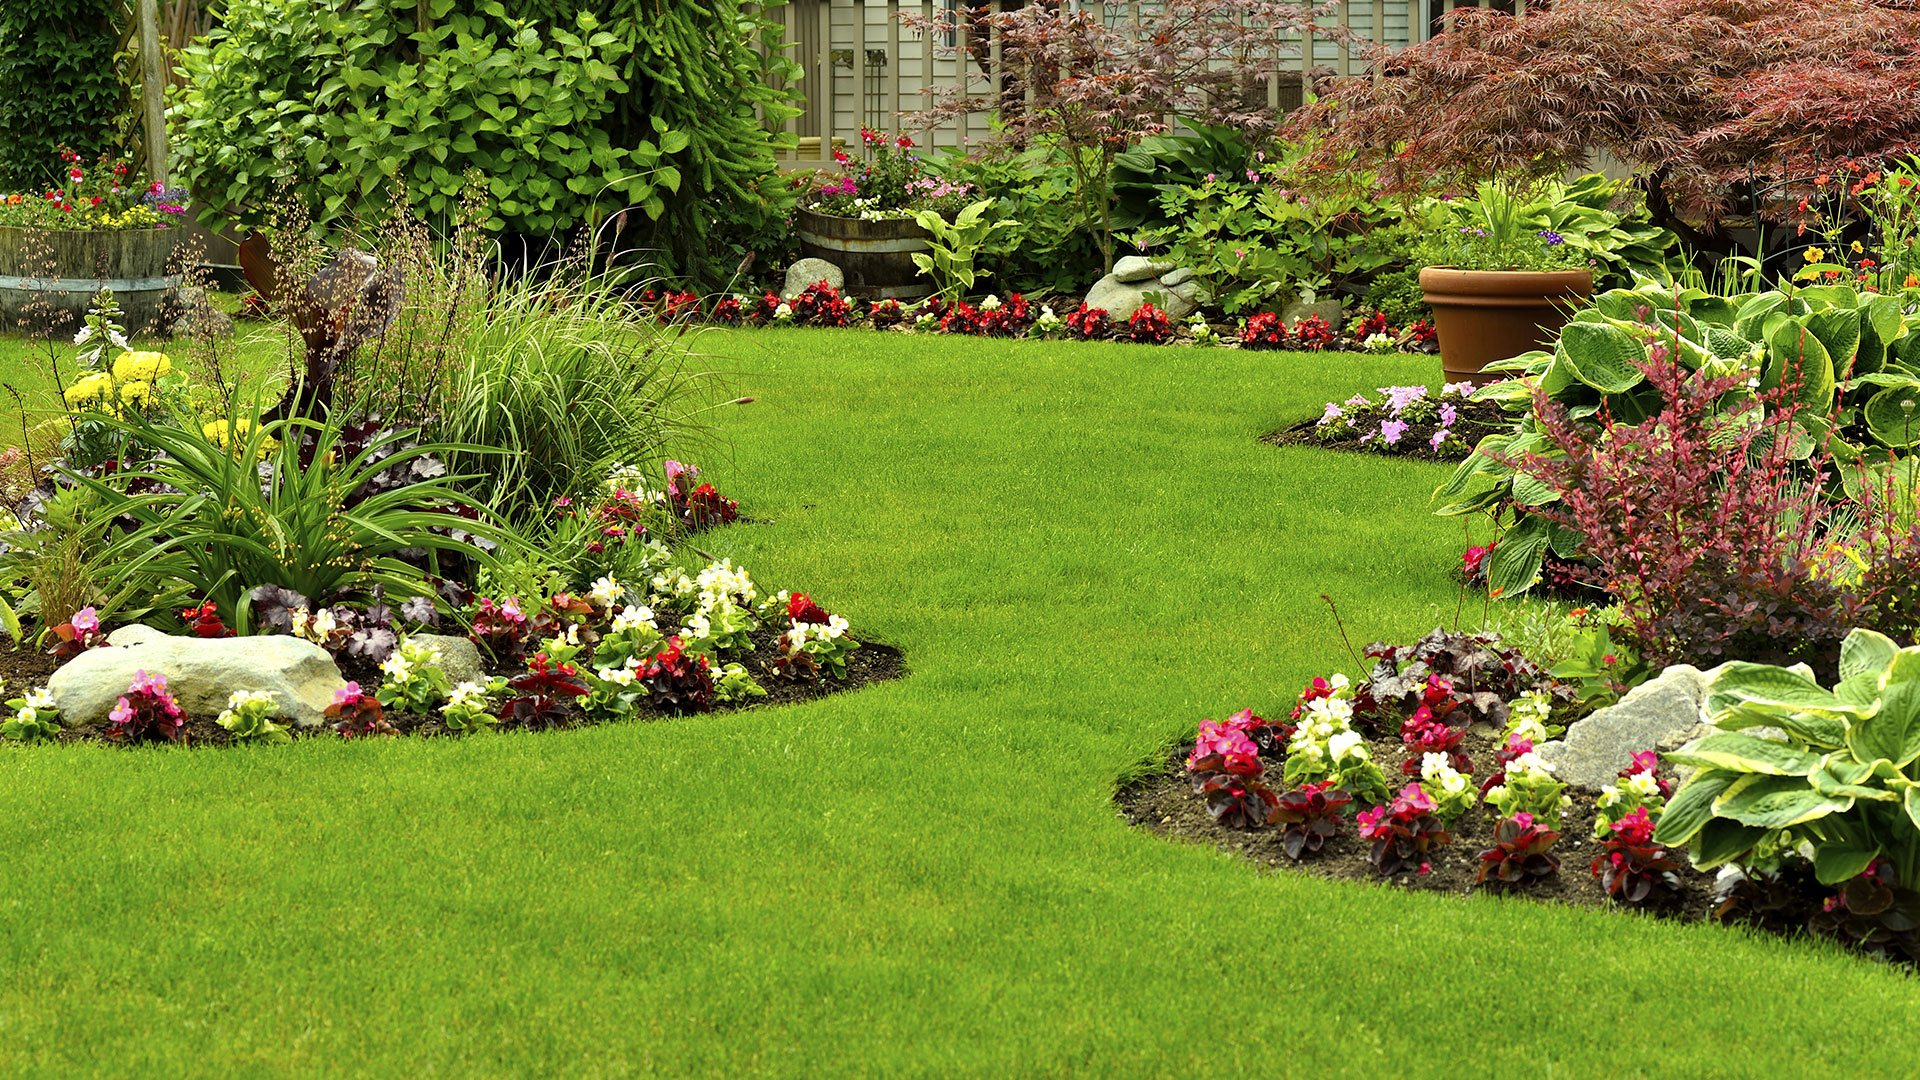 Exceptional Home | Staten Island Landscaping, Lawn Care And Yard Clean Ups